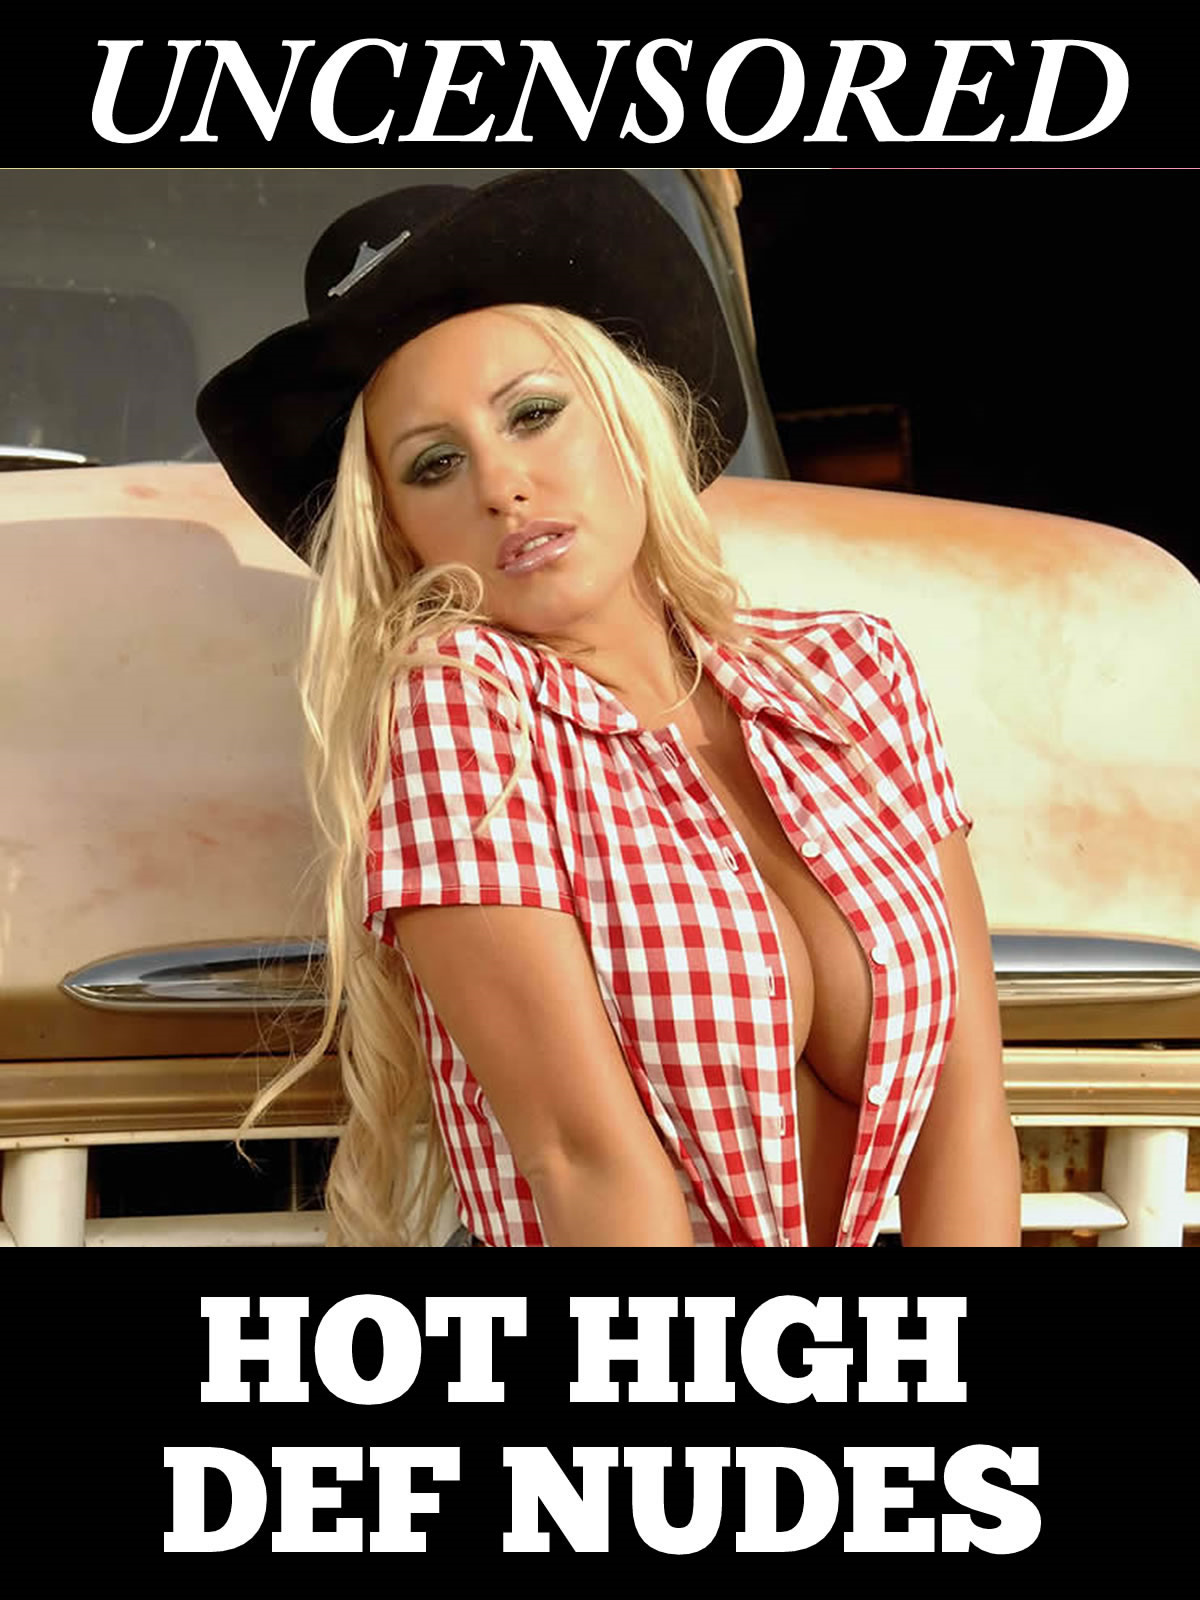 Natali – The Slutty Blonde Cow Girl With Big Tits Poses Fully Nude for the Camera